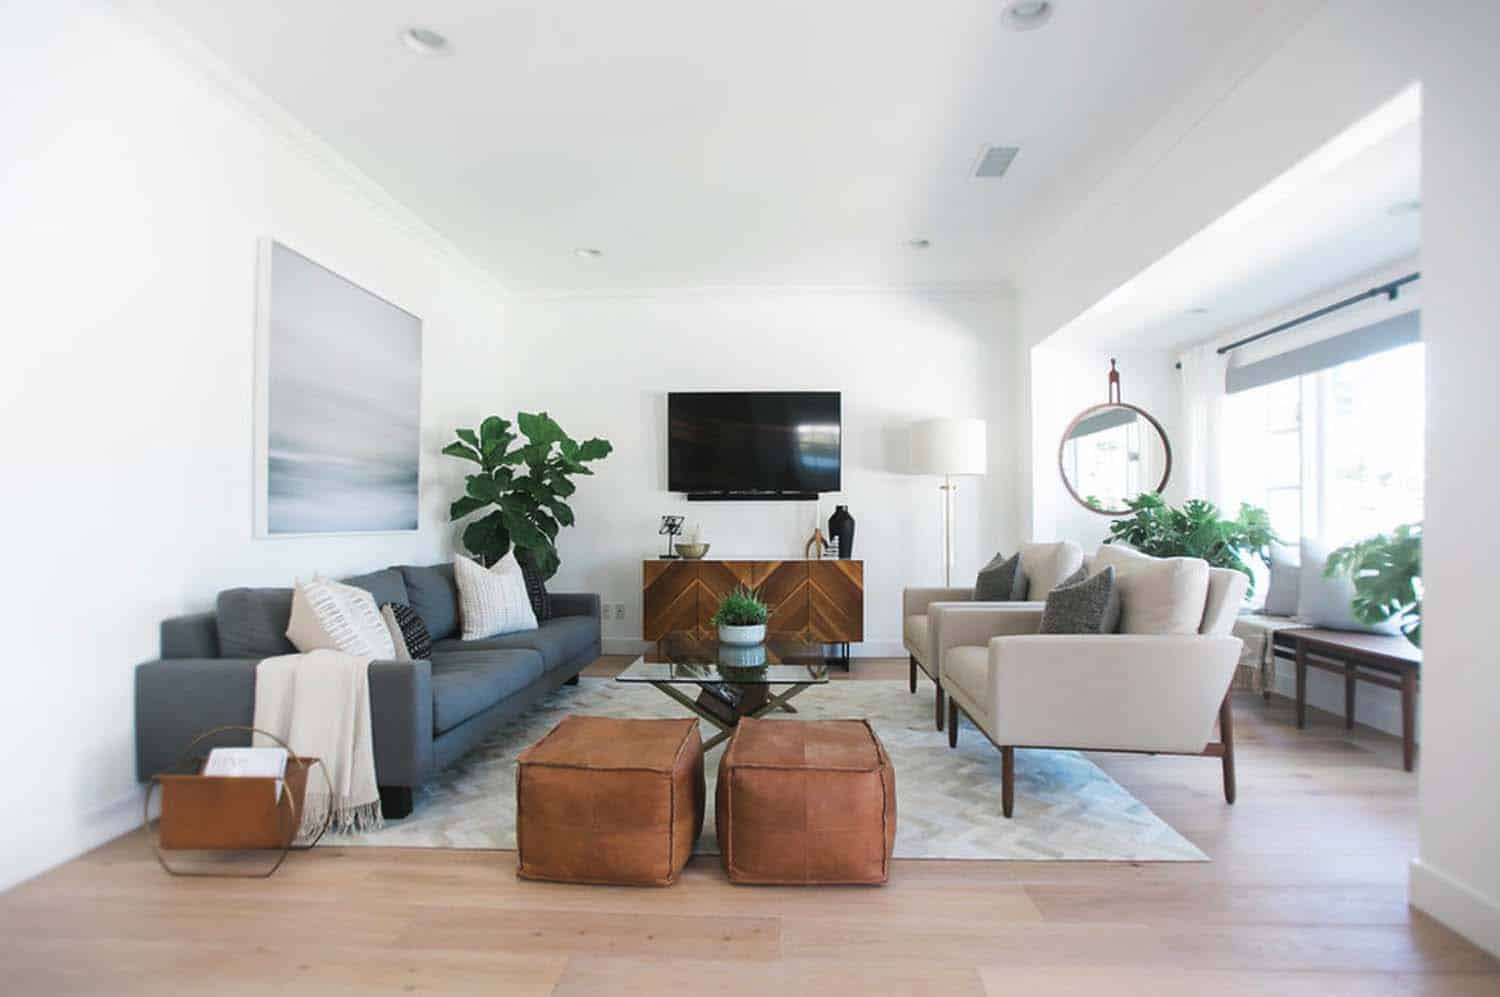 Midcentury modern house in Newport Beach gets stylish makeover